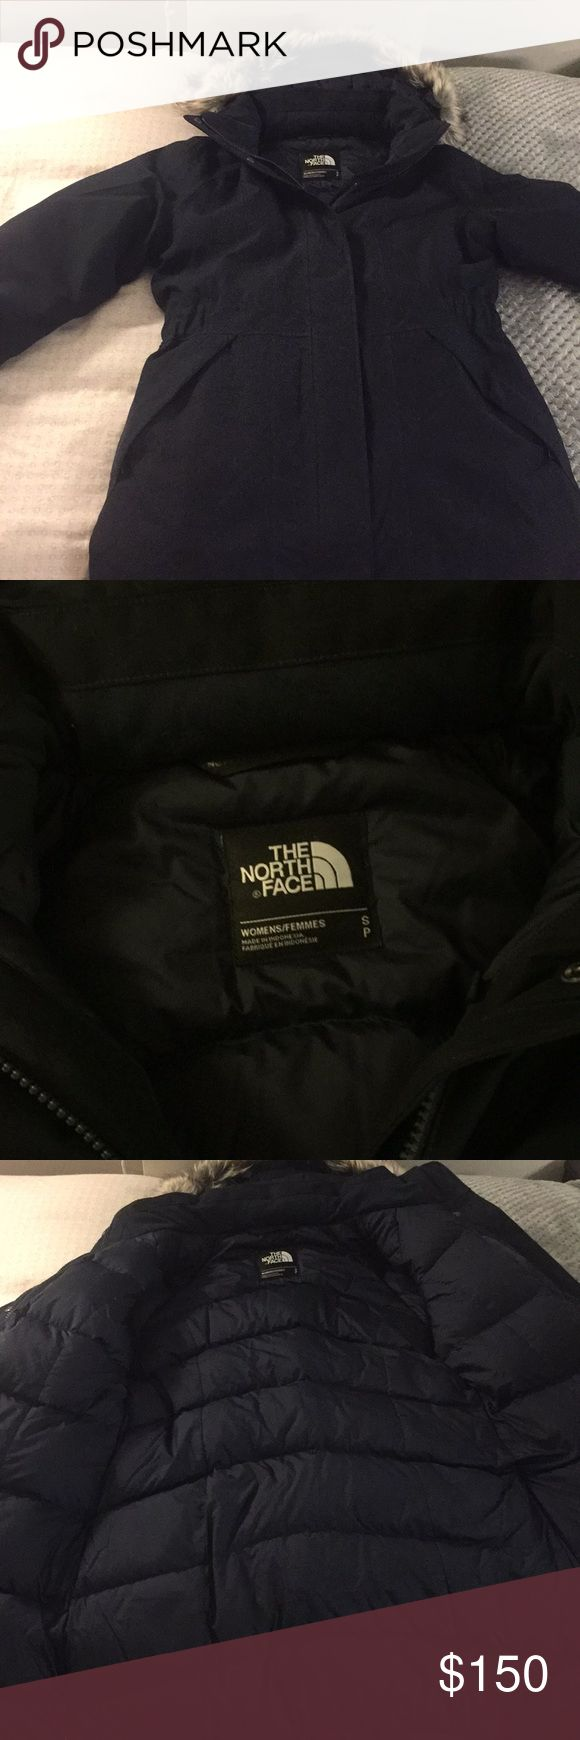 The North Face Winter Artic Parka - Size S Navy Winter Artic Parka waterproof Size S but can also be worn for M. Only worn twice because of travelling to Canada. This parka is beautiful and perfect for cold and extreme cold weather conditions. Designed for City, Breathable, Insulated, Waterproof, windproof The North Face Jackets & Coats Puffers